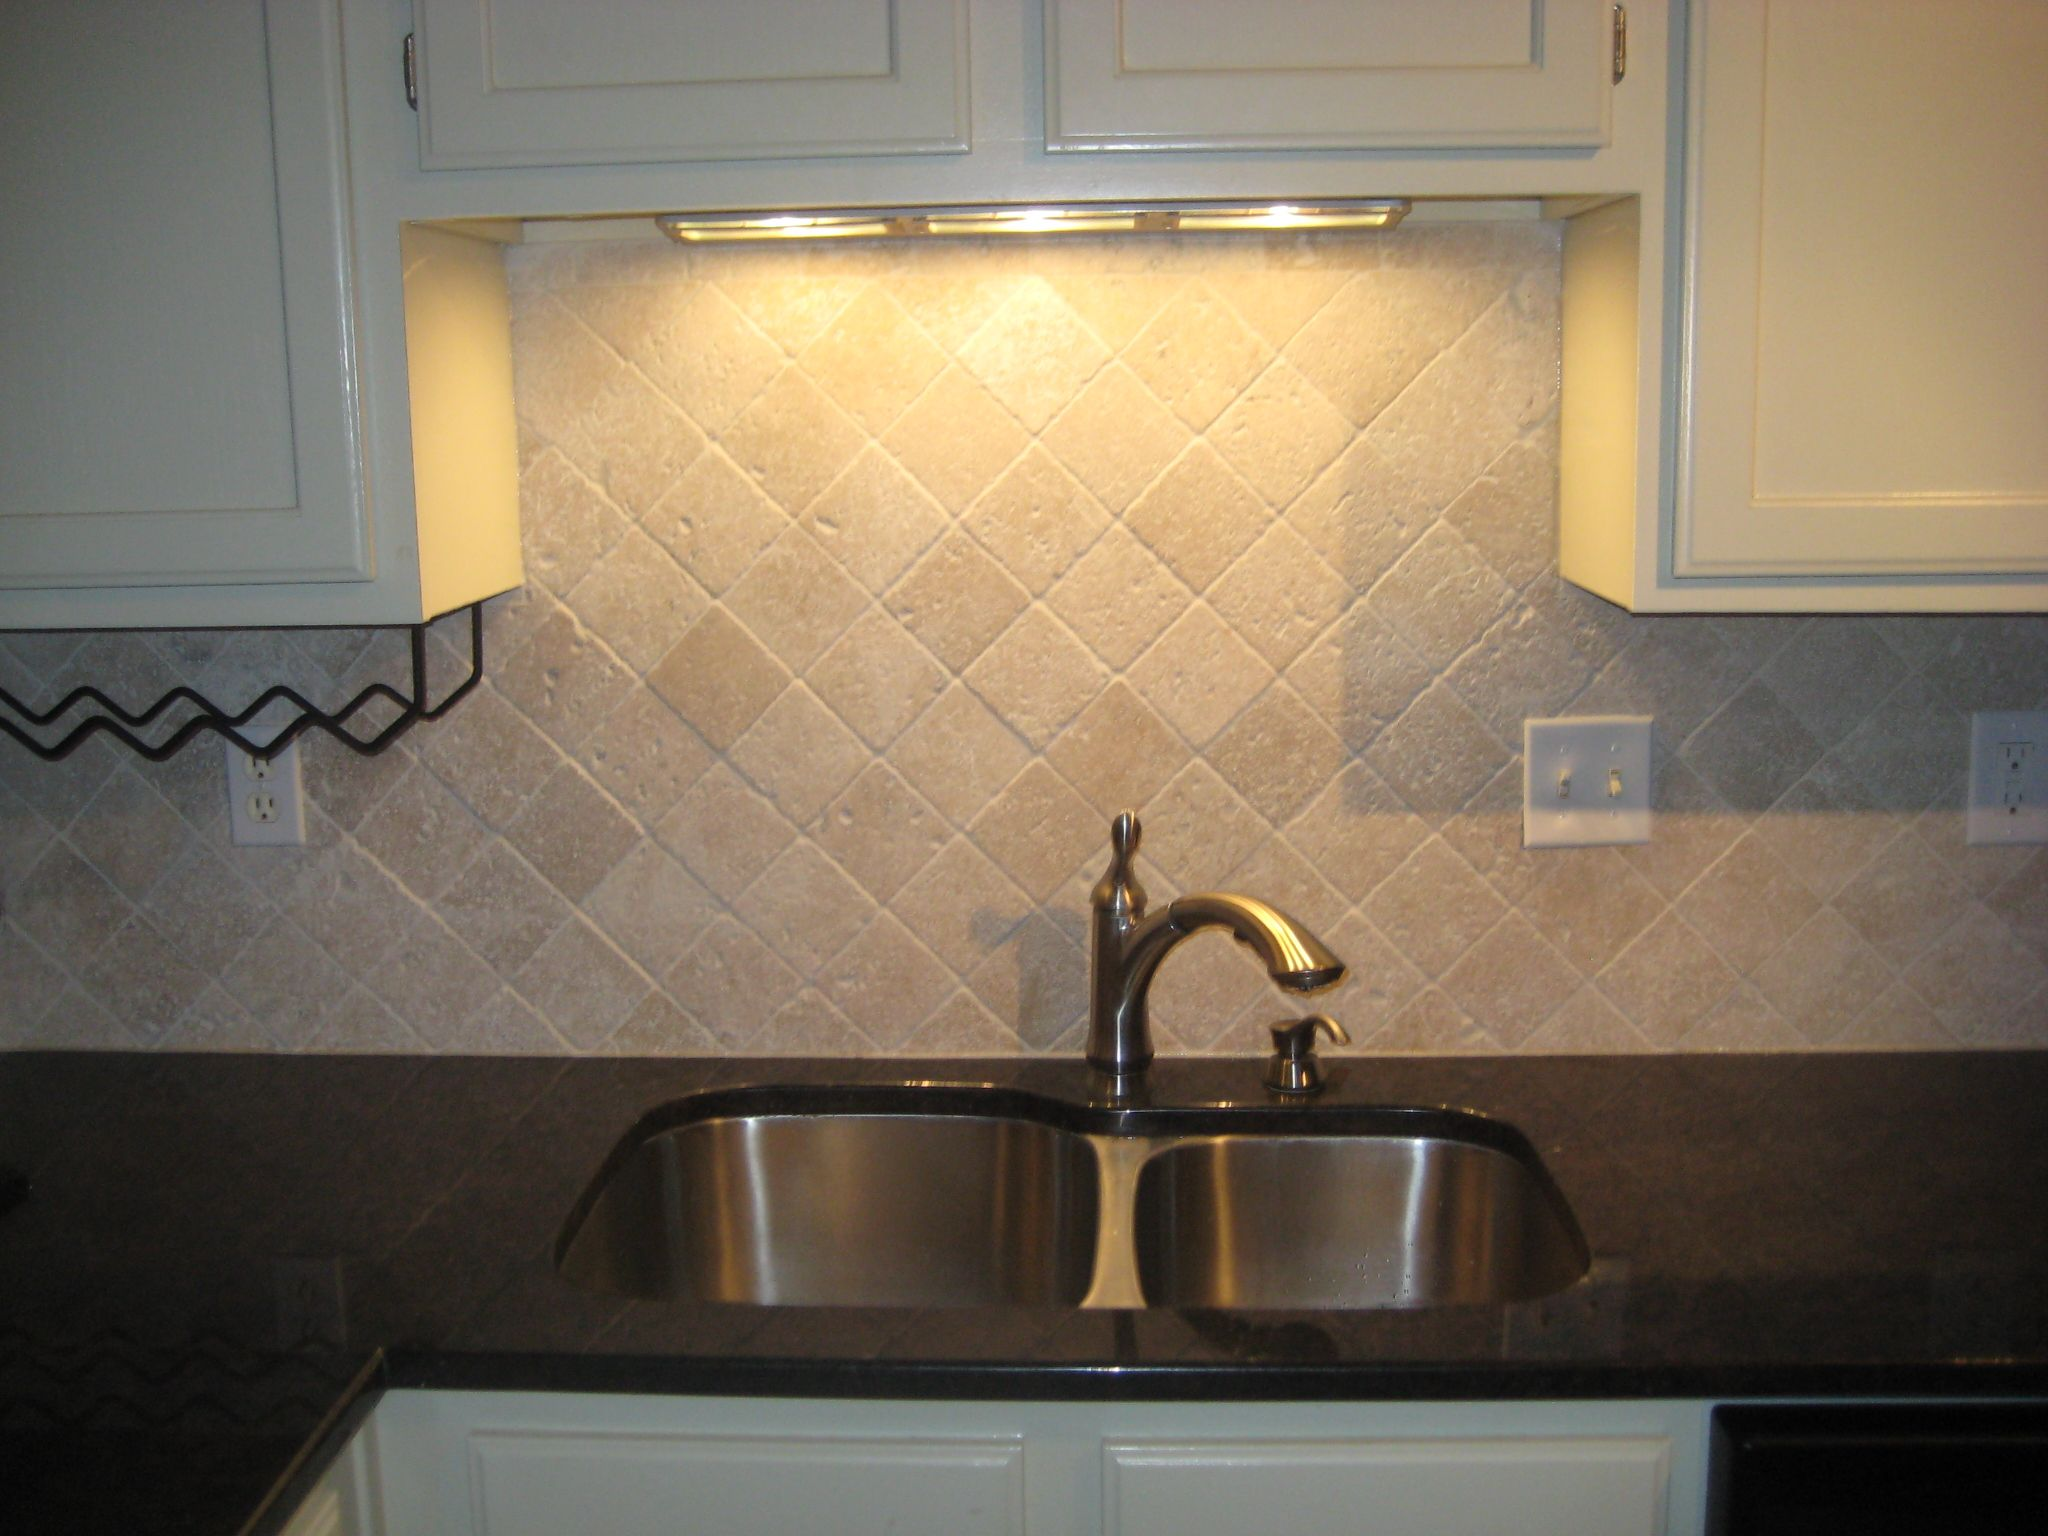 Villa kitchen\'s undermount stainless steel 60/40 split sink, Sawyer ...